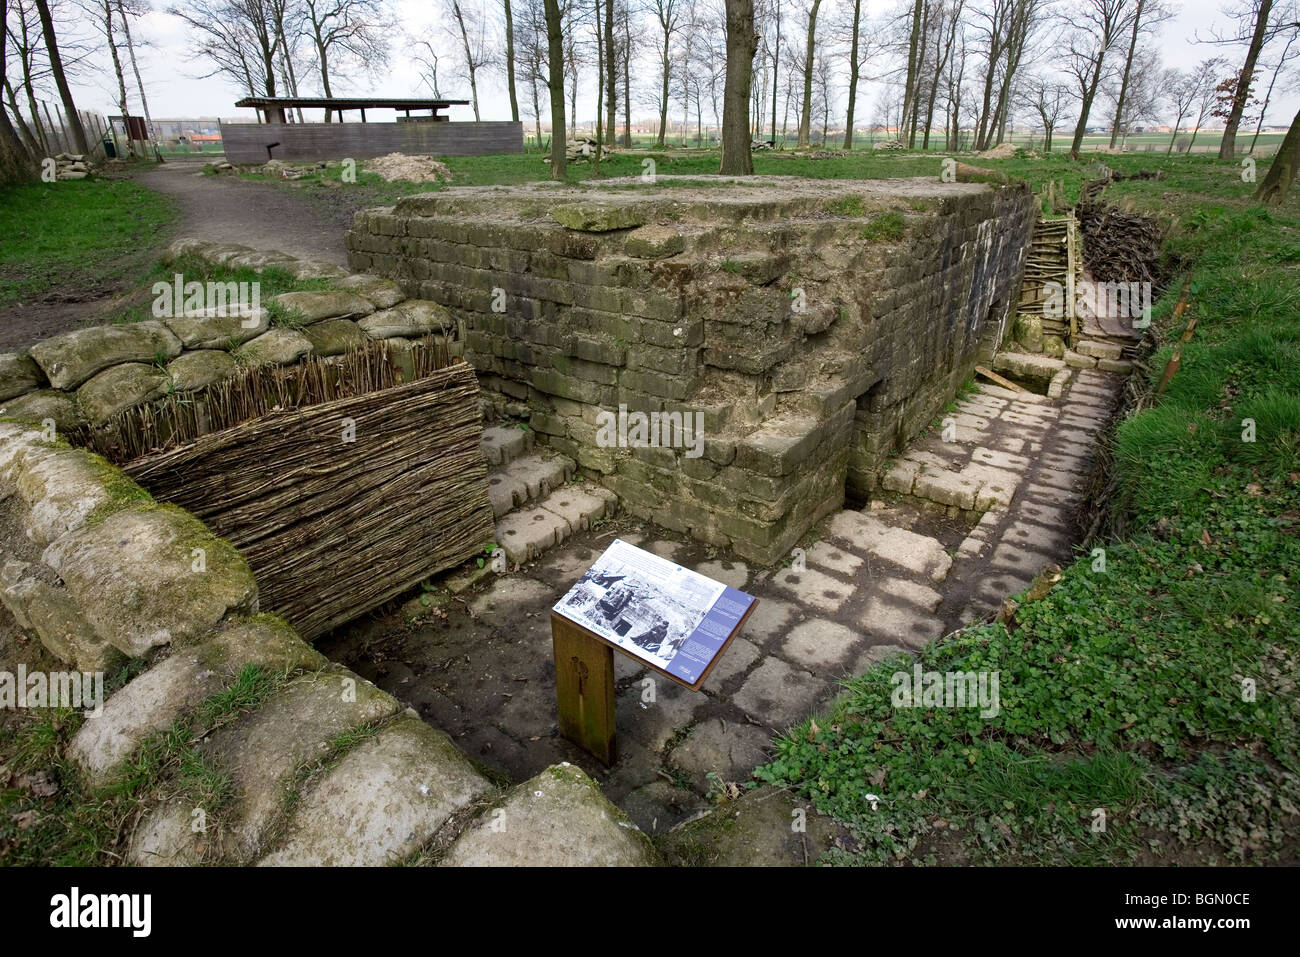 German Trenches Wwi Stock Photos & German Trenches Wwi Stock ...